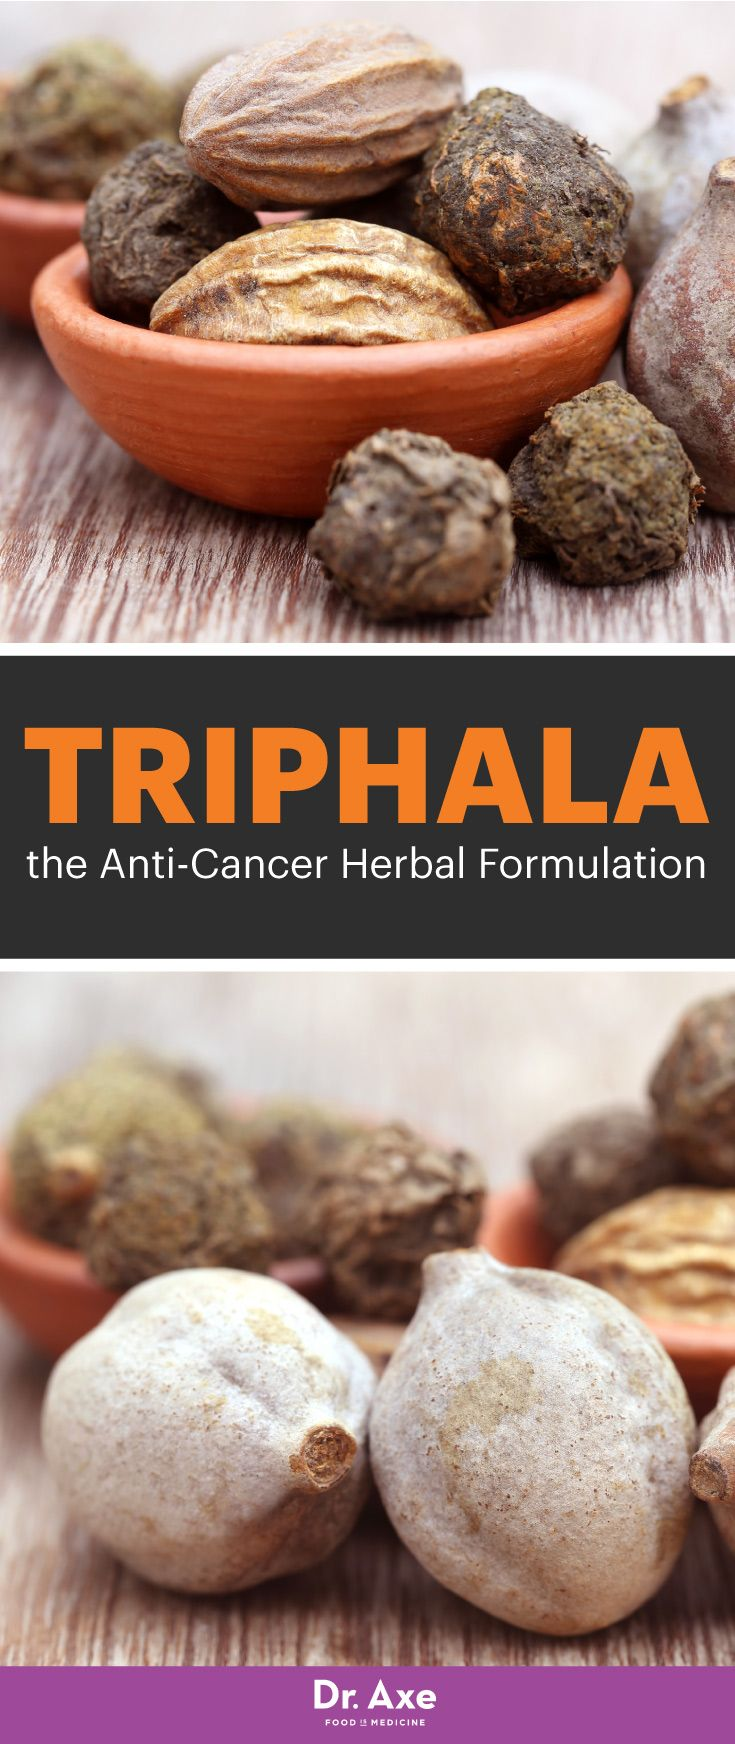 Triphala: an Ayurvedic Herbal Formulation that Fights Cancer & Constipation